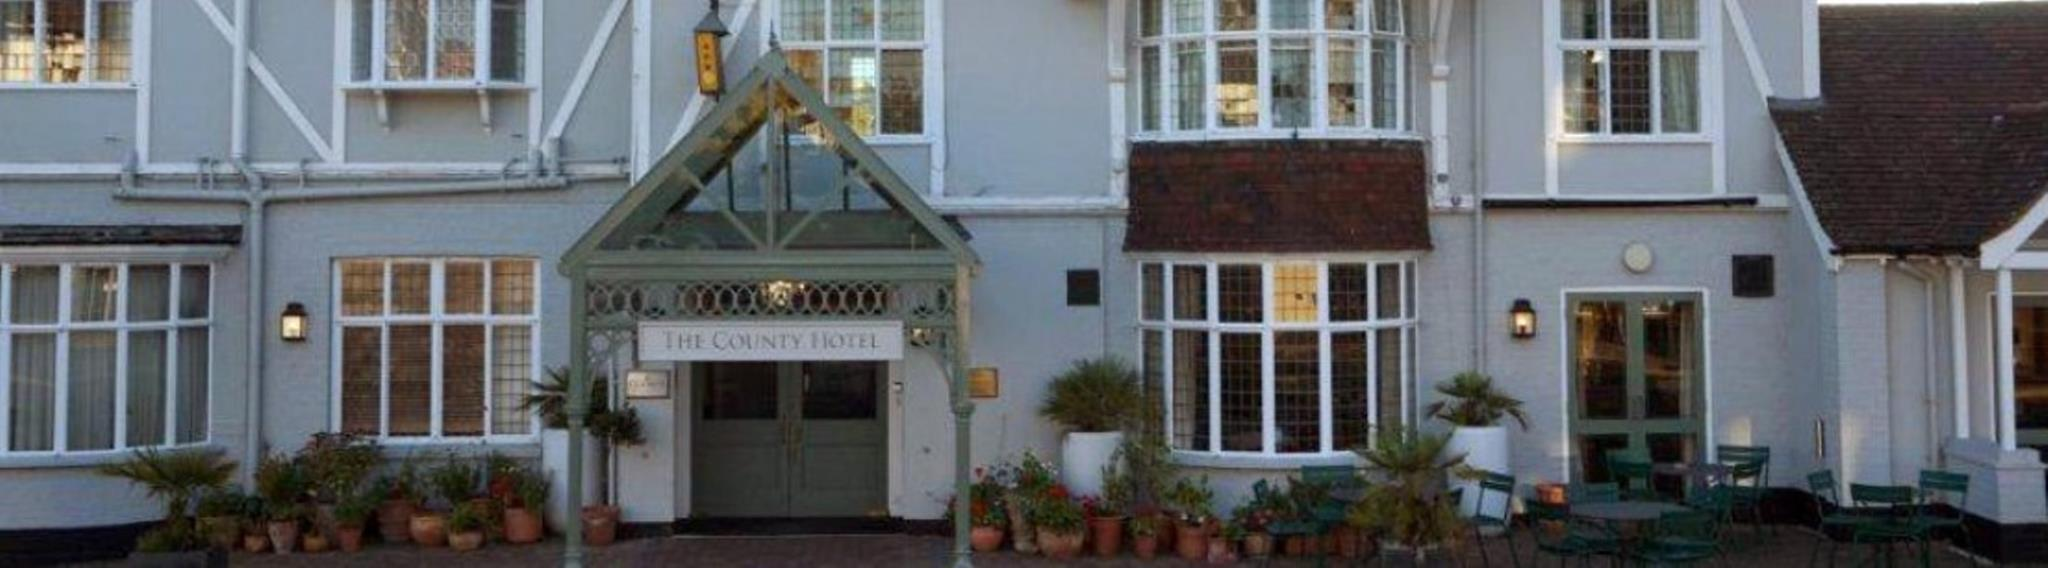 The County Hotel, Essex